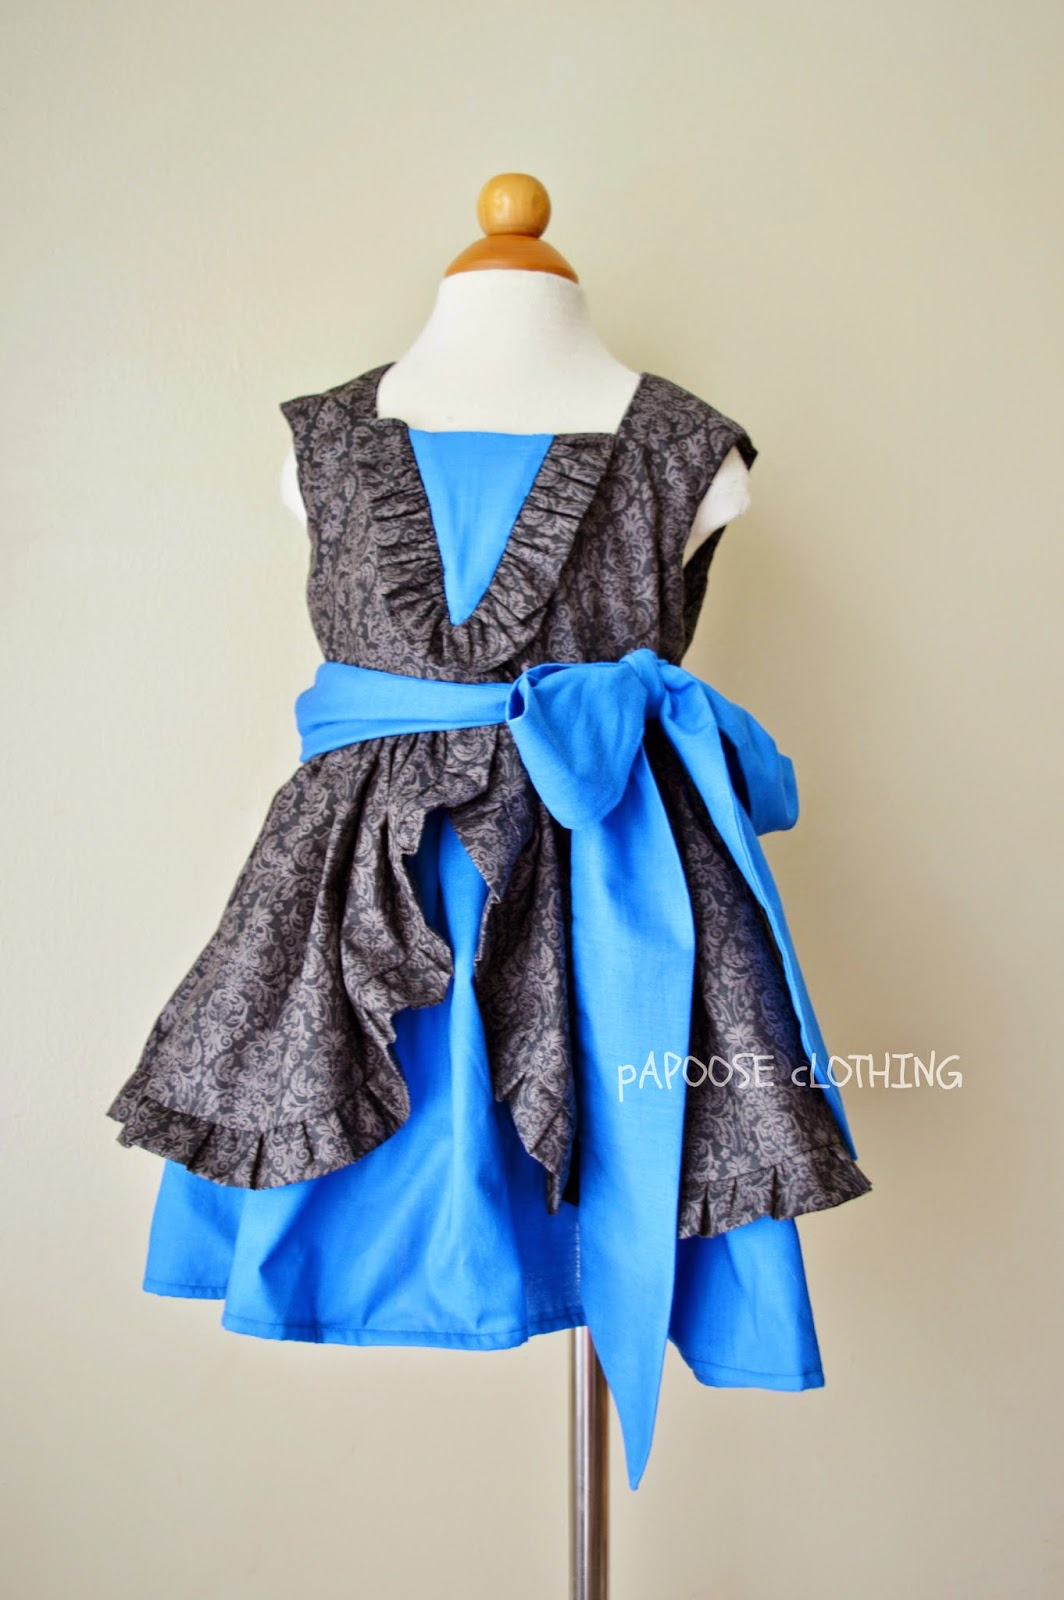 https://www.etsy.com/listing/223769789/blue-lagoon-ruffle-dress-autumn-winter?ref=shop_home_active_5